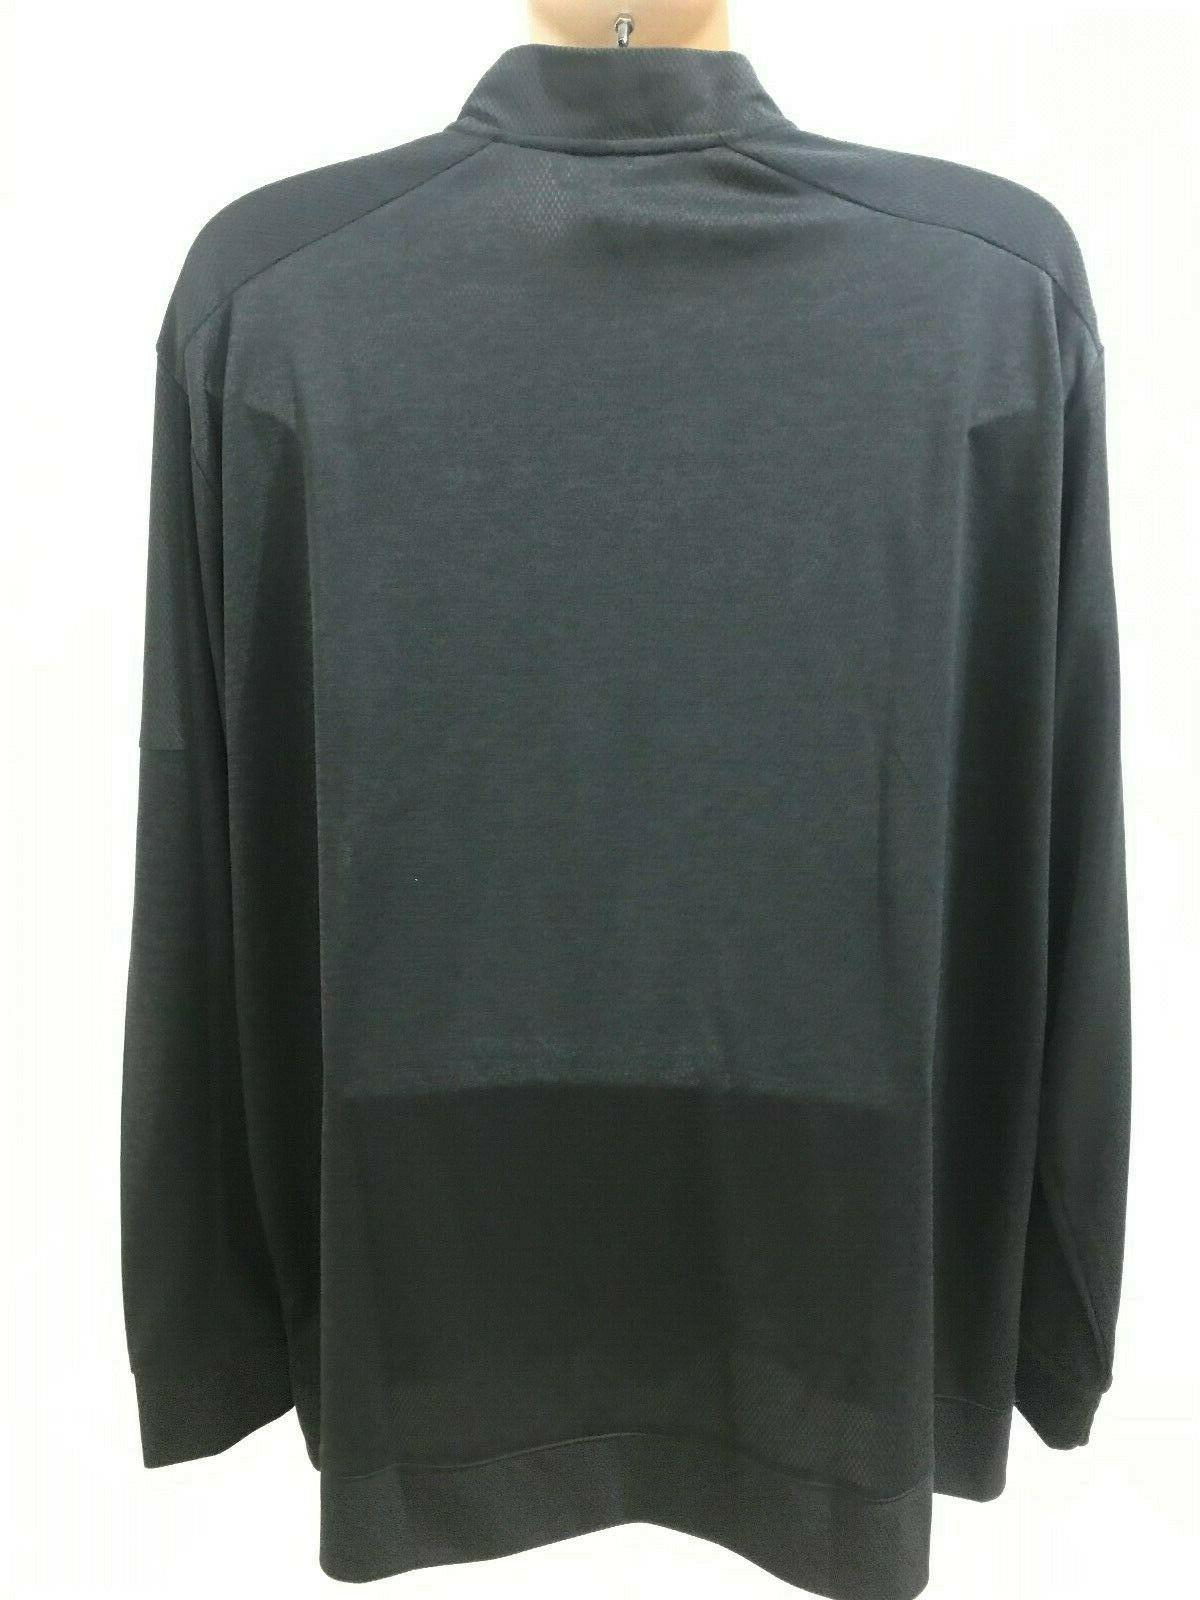 Adidas Mens Black 2XL Full Issue Lite